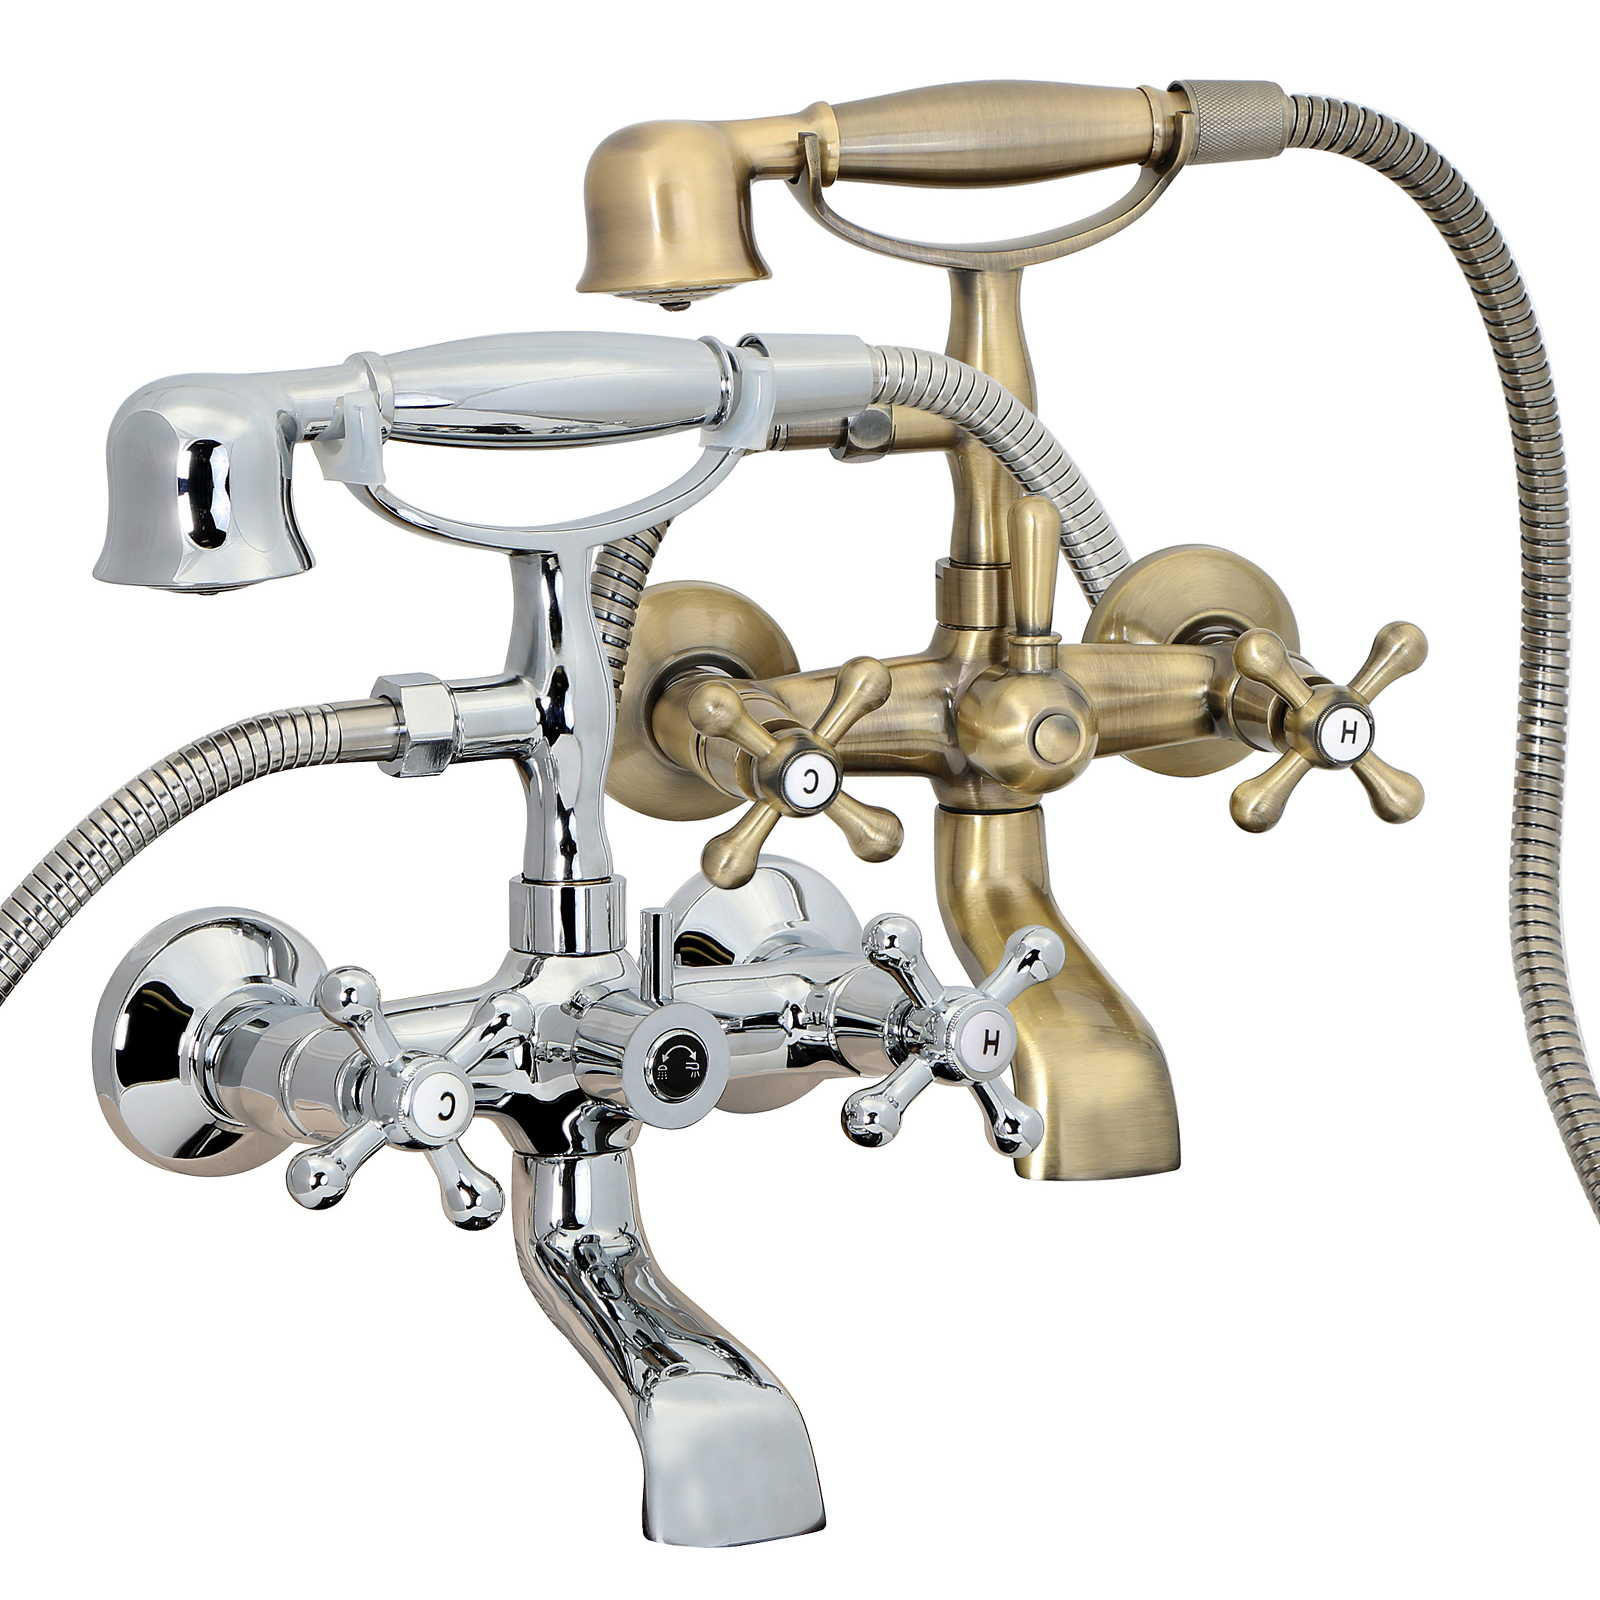 FREUER Vasca Collection: Classic Clawfoot Tub Faucet - Wall Mount, Polished Chrome